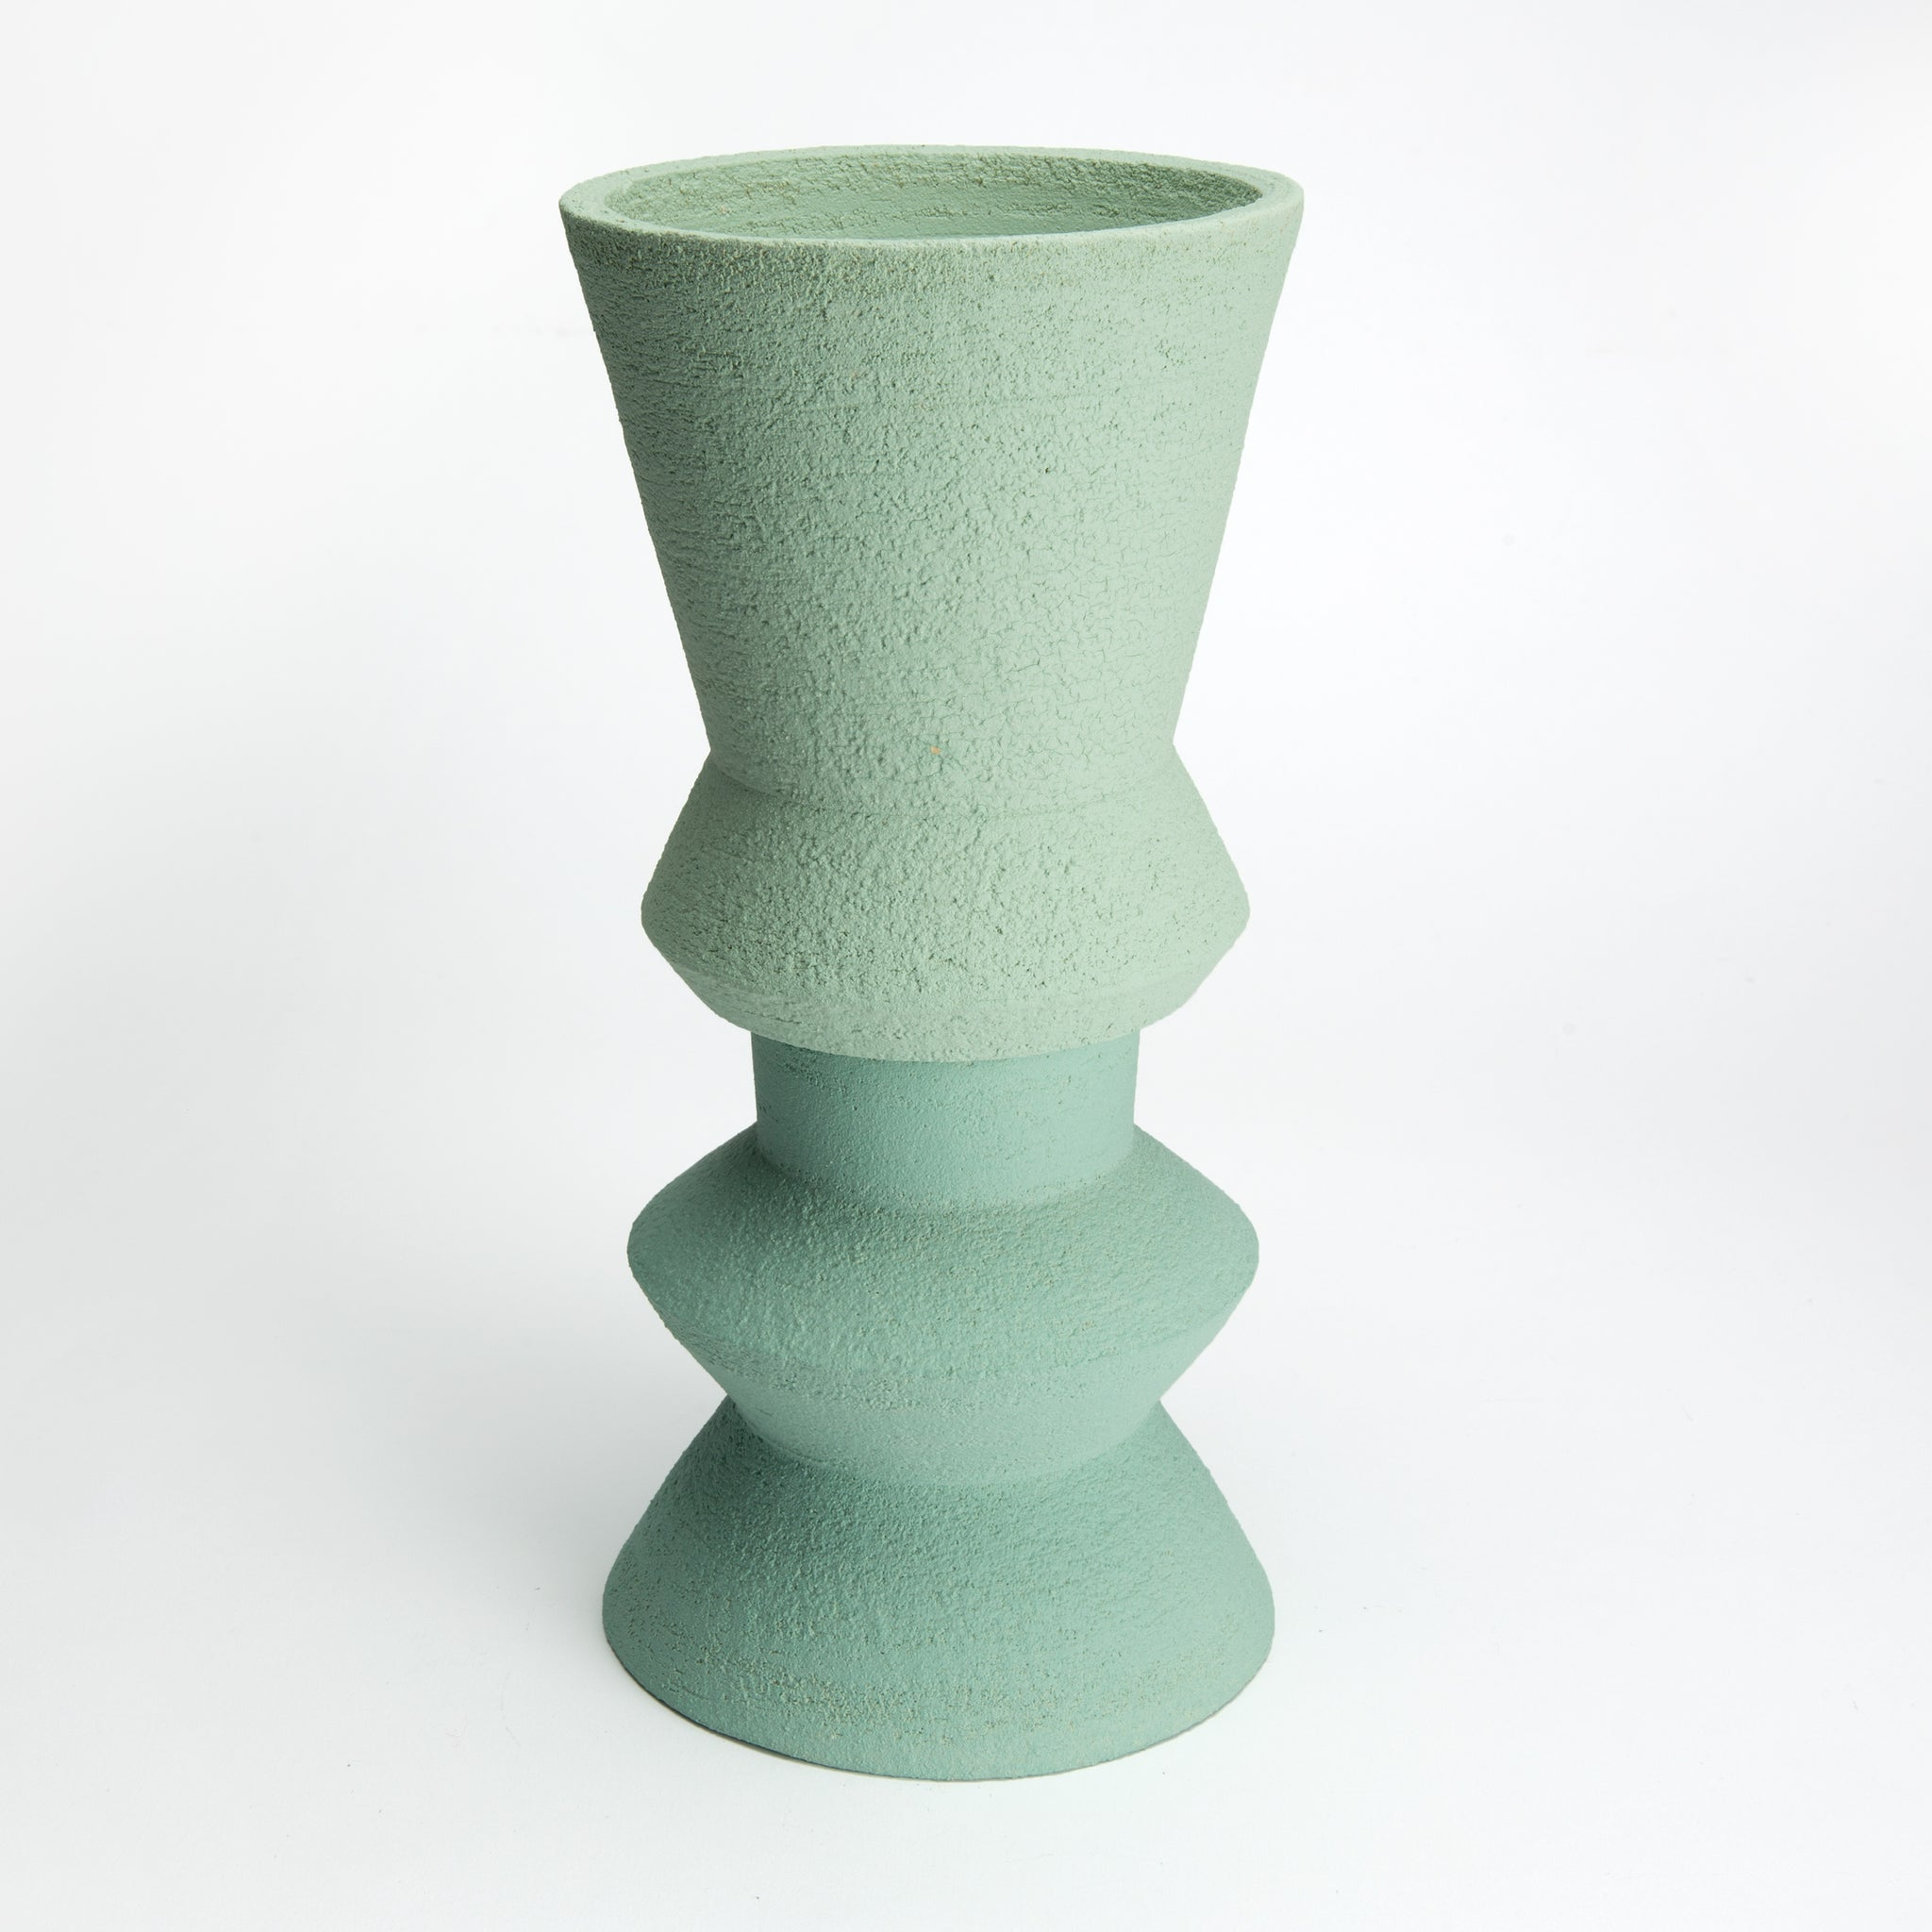 Two-Part Plant Pot in Mint